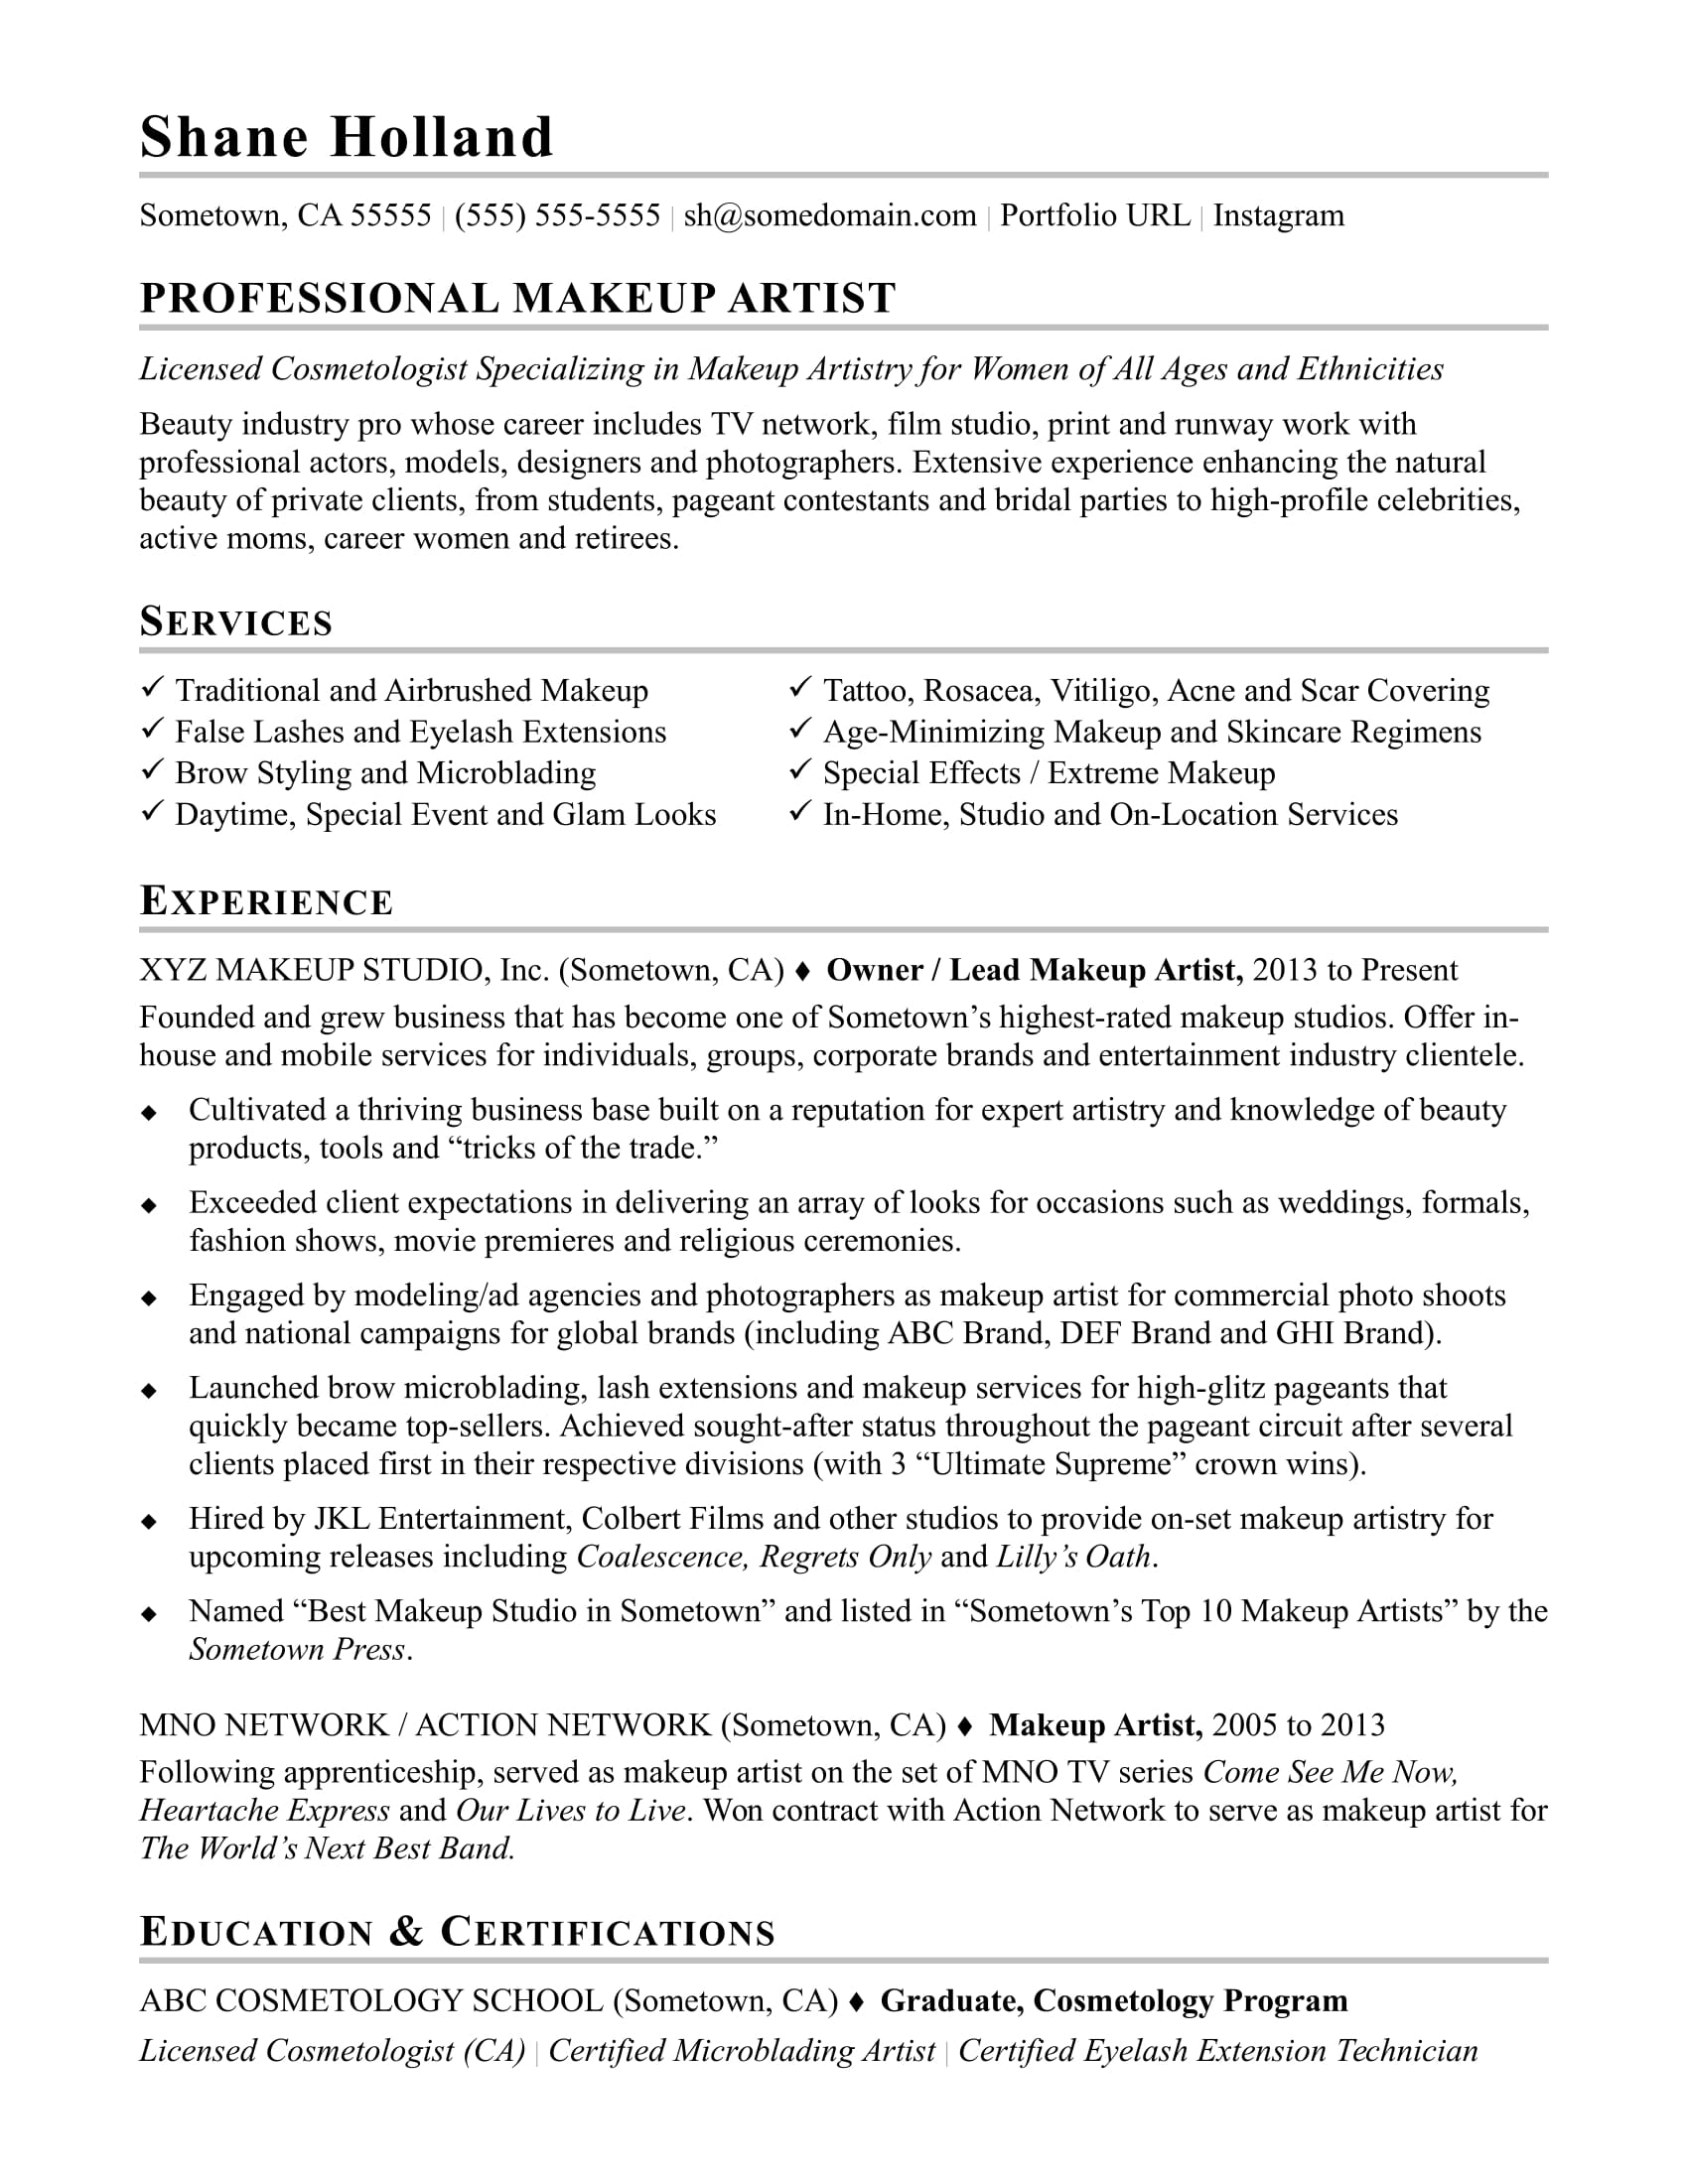 Makeup Artist Resume Sample | Monster.com